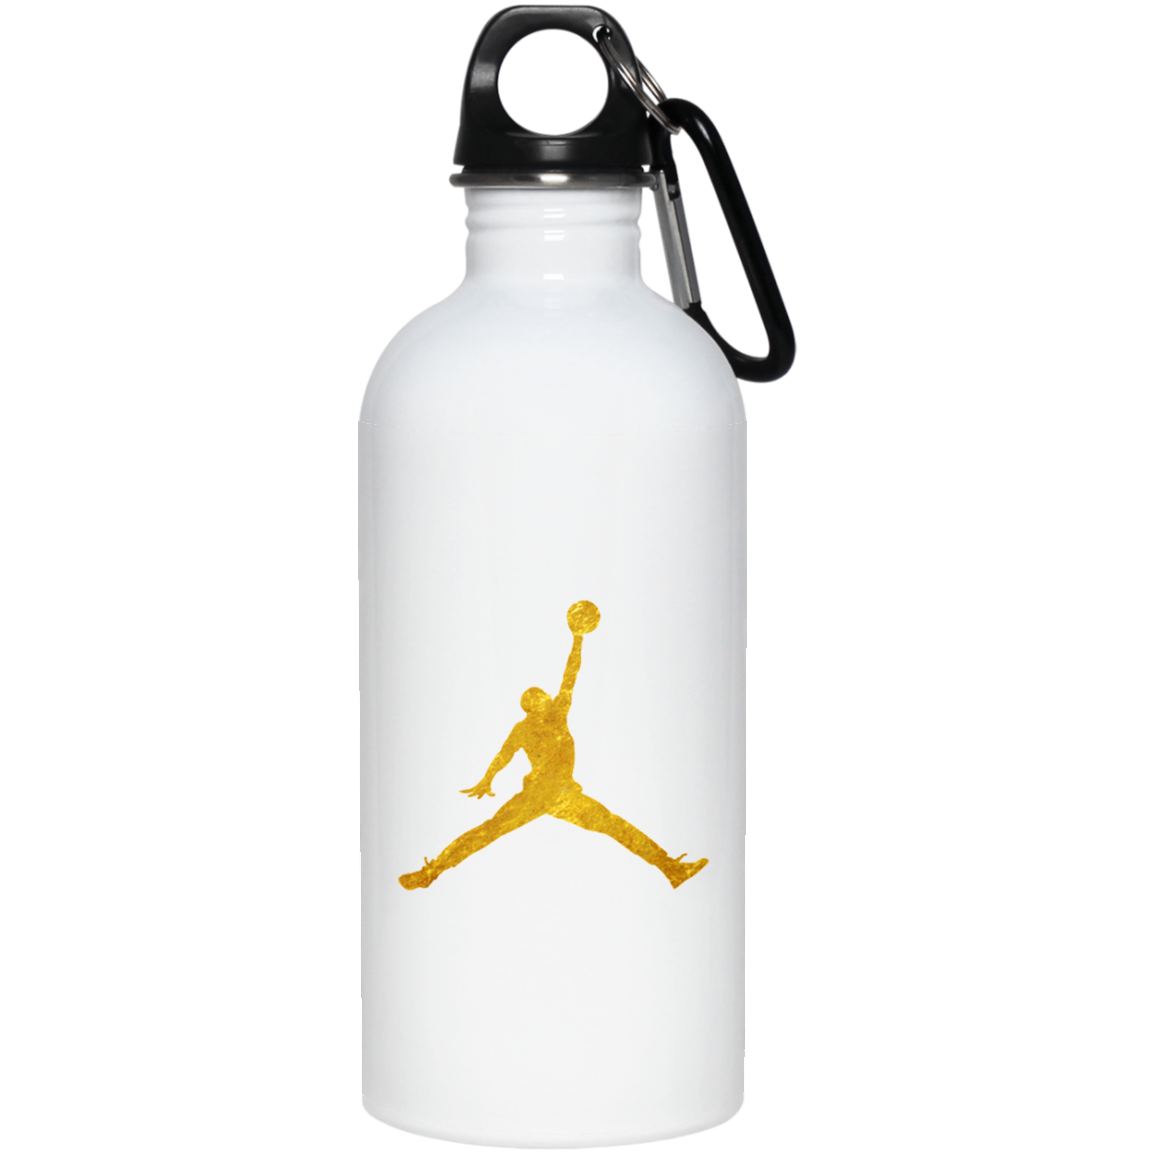 Gold Jordan Logo 23663 20 oz. Stainless Steel Water Bottle